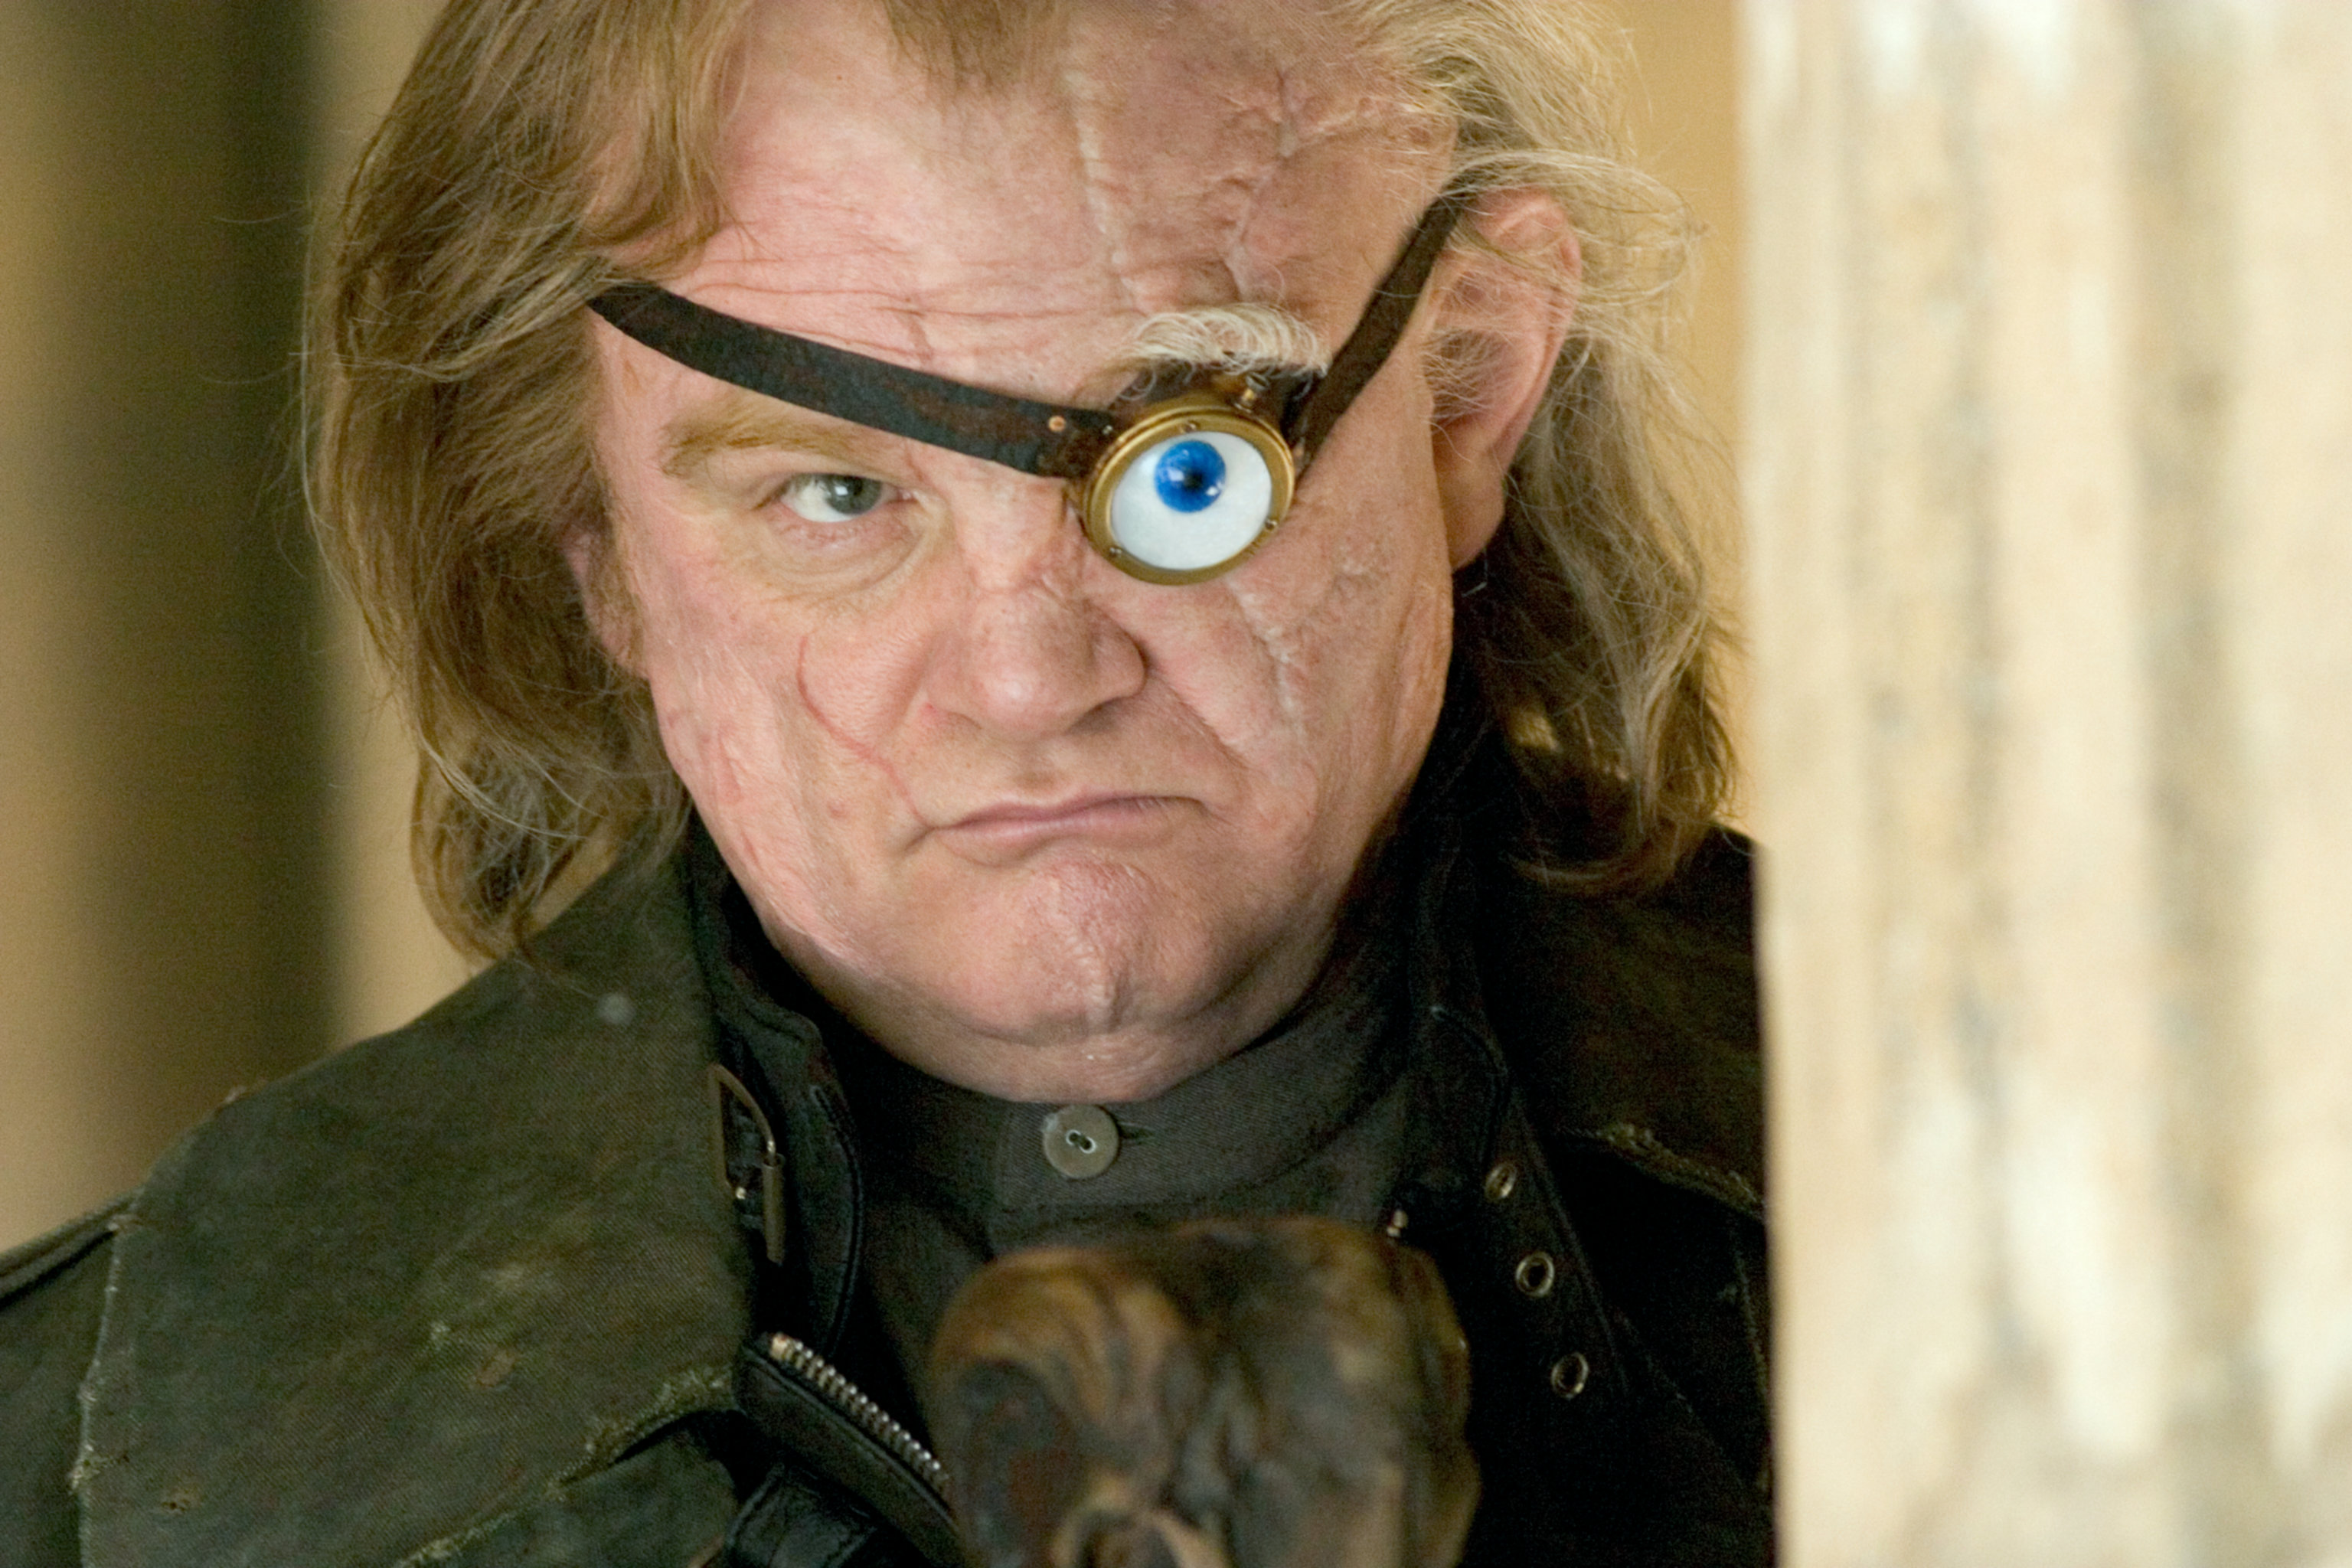 Alastor 'Mad-Eye' Moody